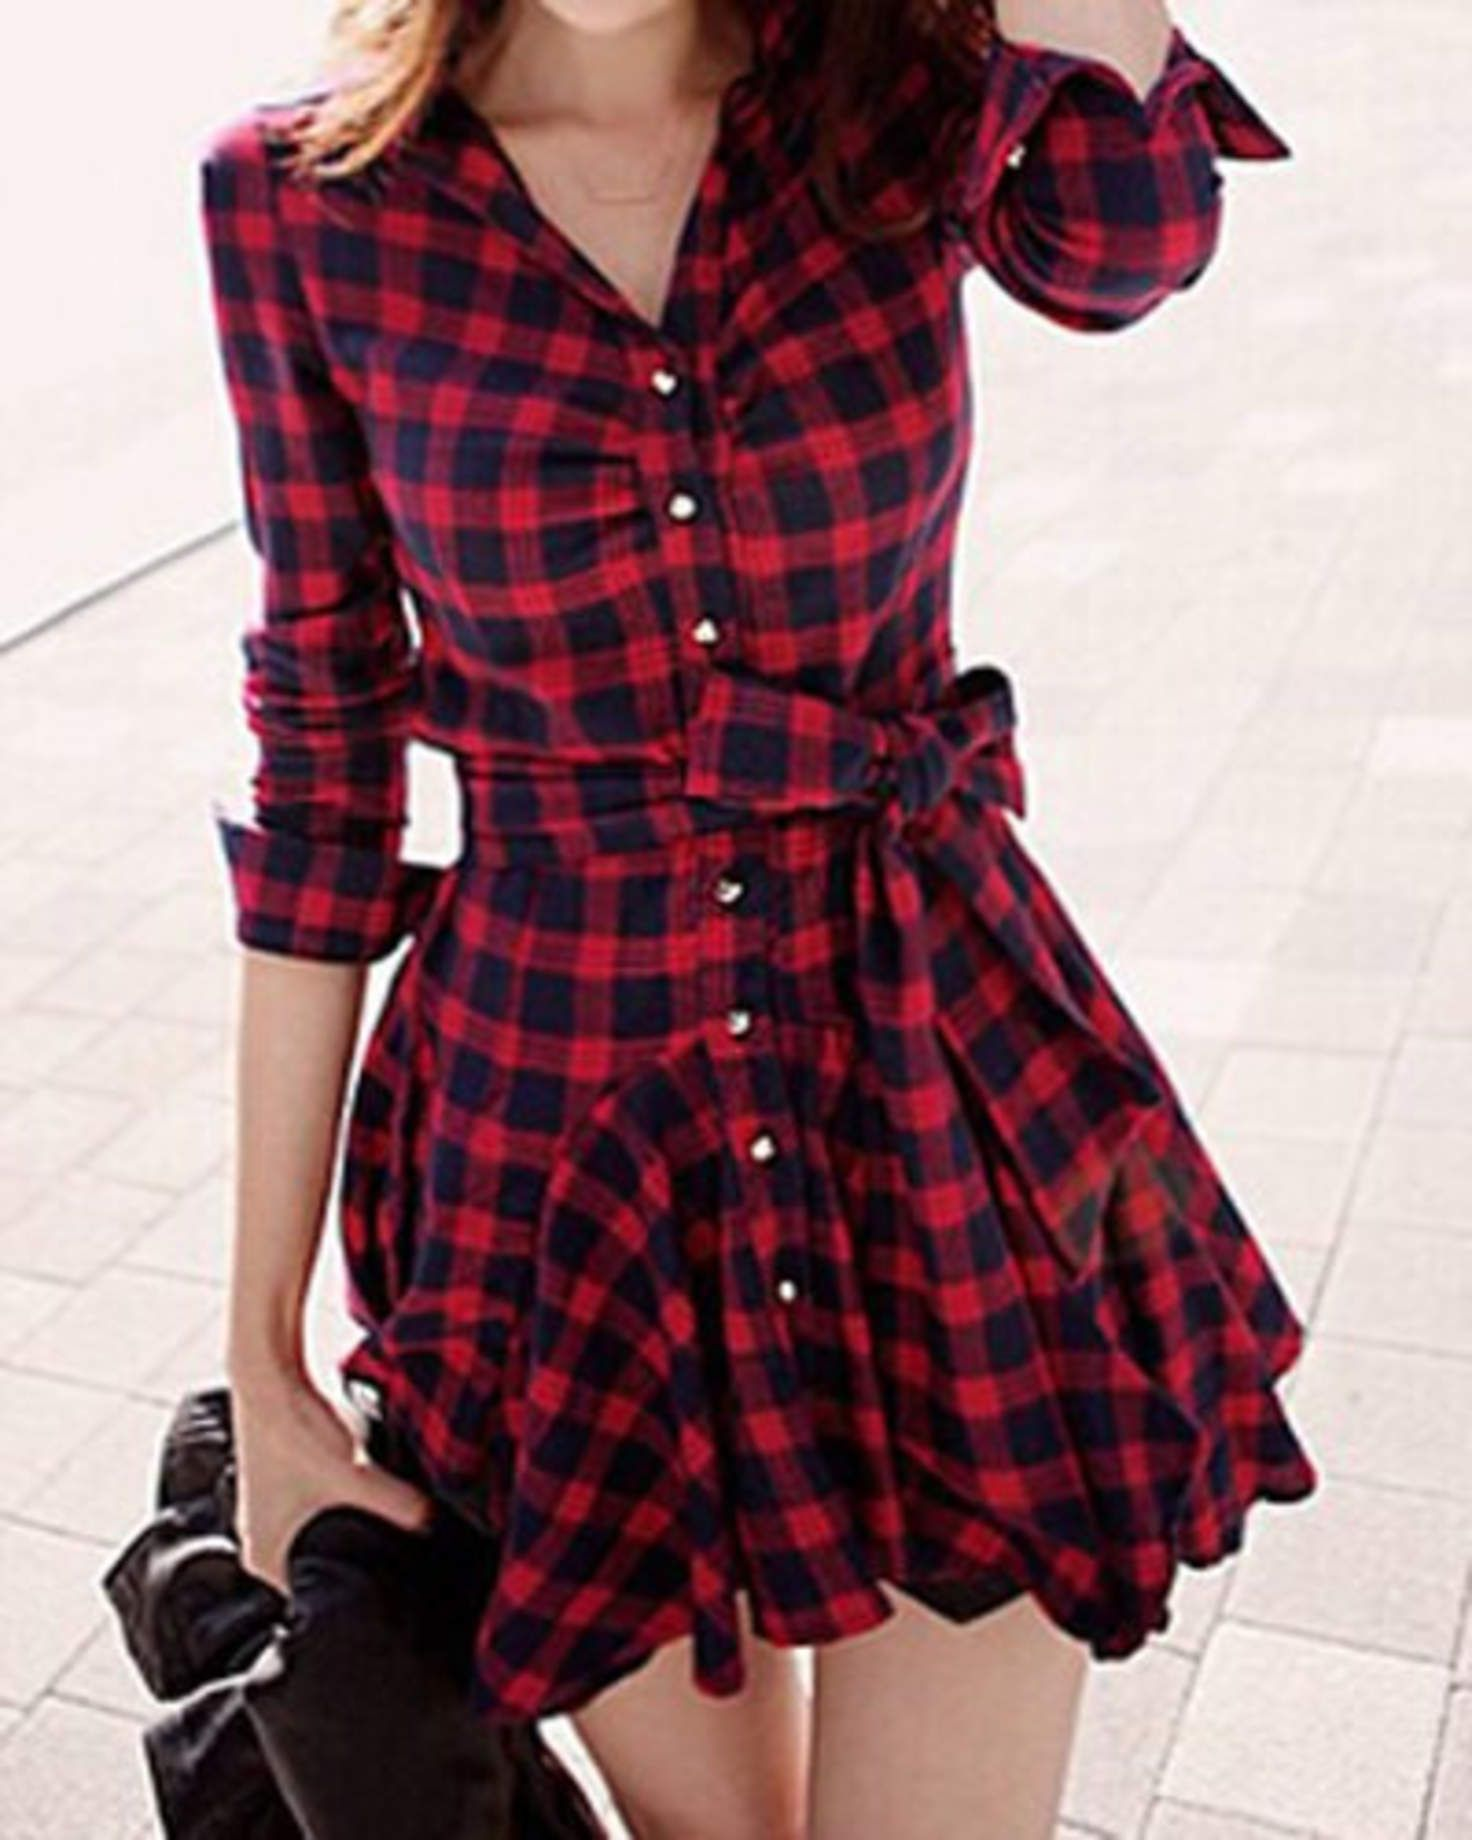 Red flannel around waist  Red Plaid Long Sleeve ButtonUp Dress with Belt  kore dizi